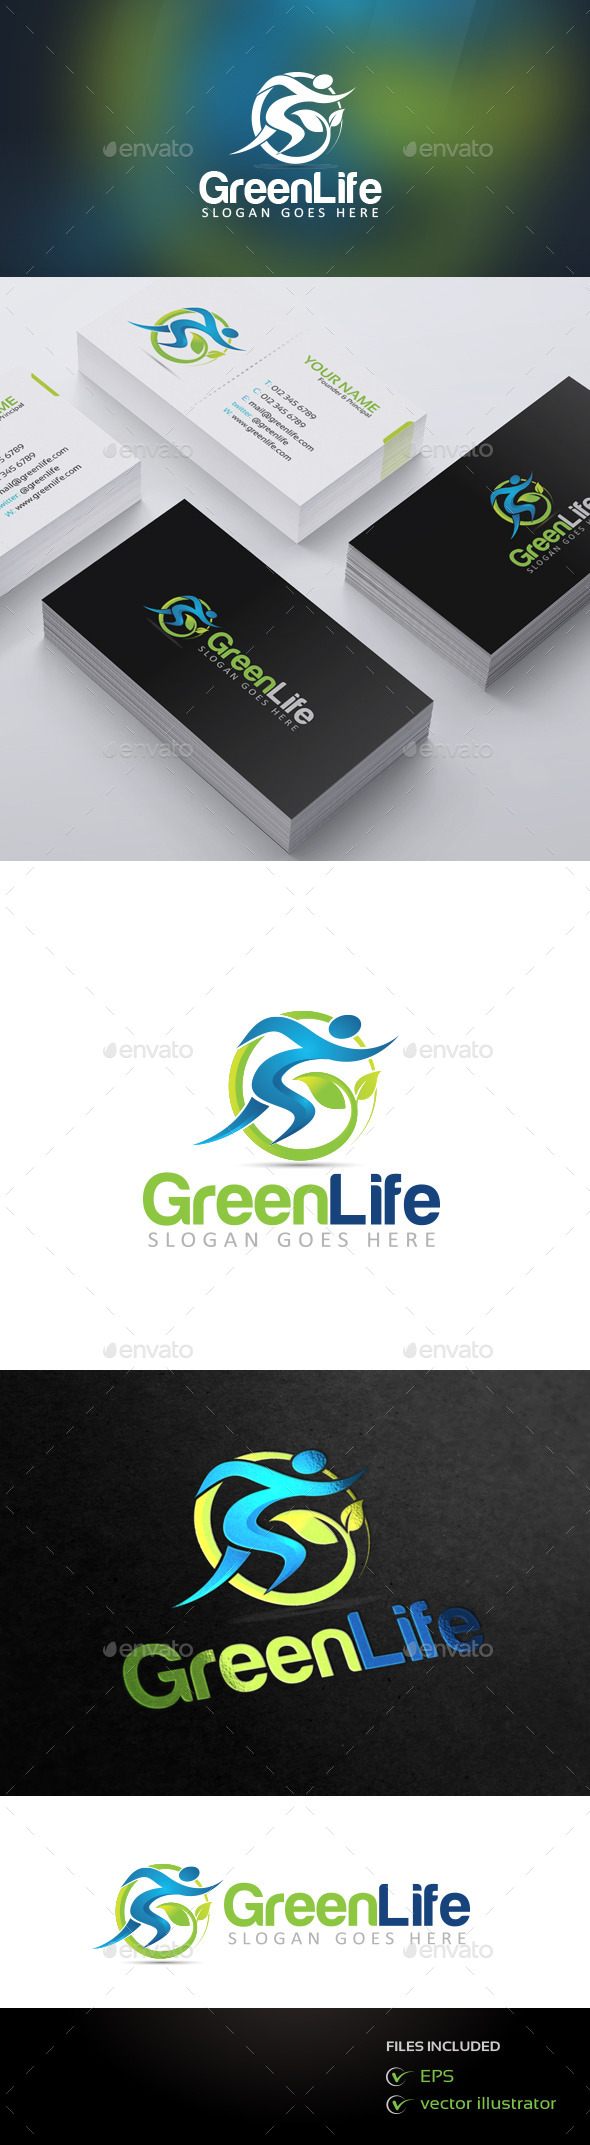 GraphicRiver GreenLife 9258754